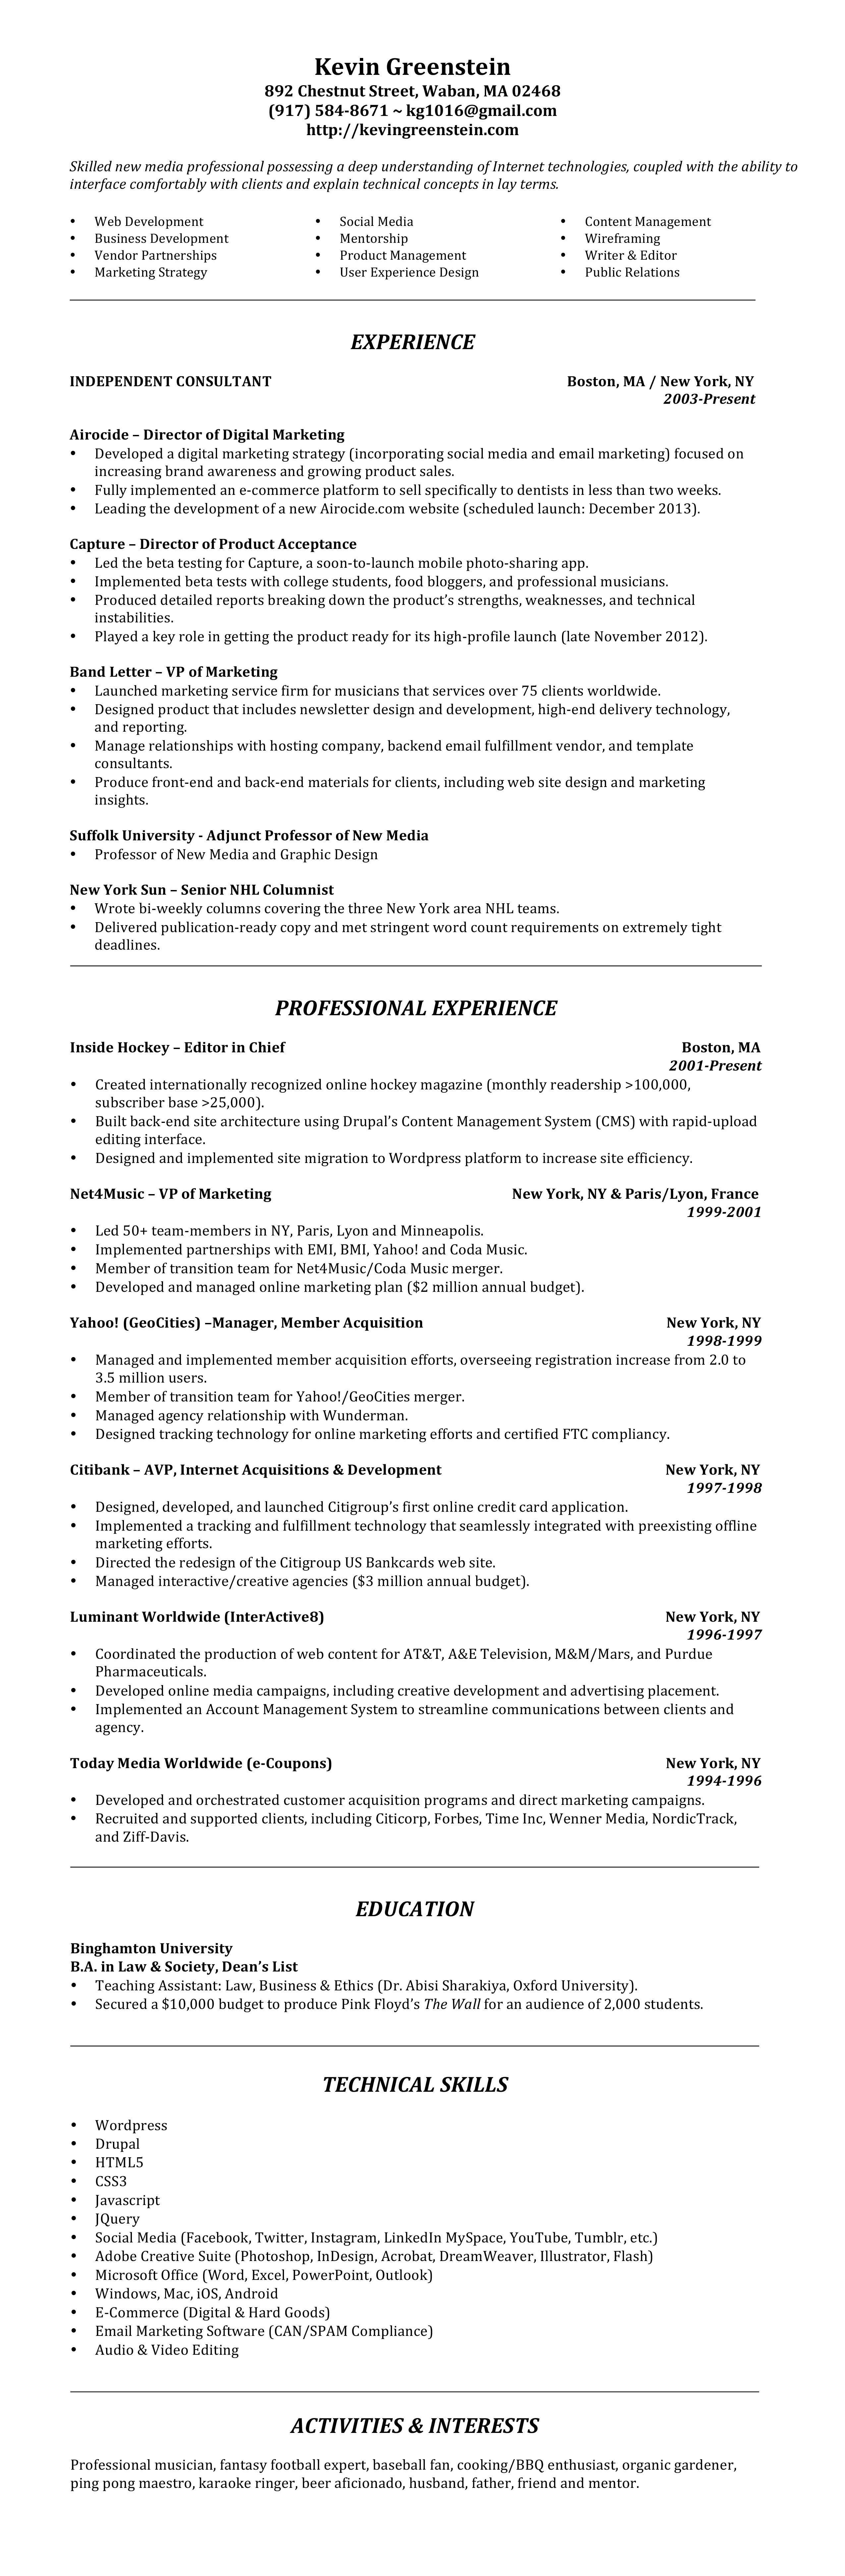 kevin-greenstein-resume-2014